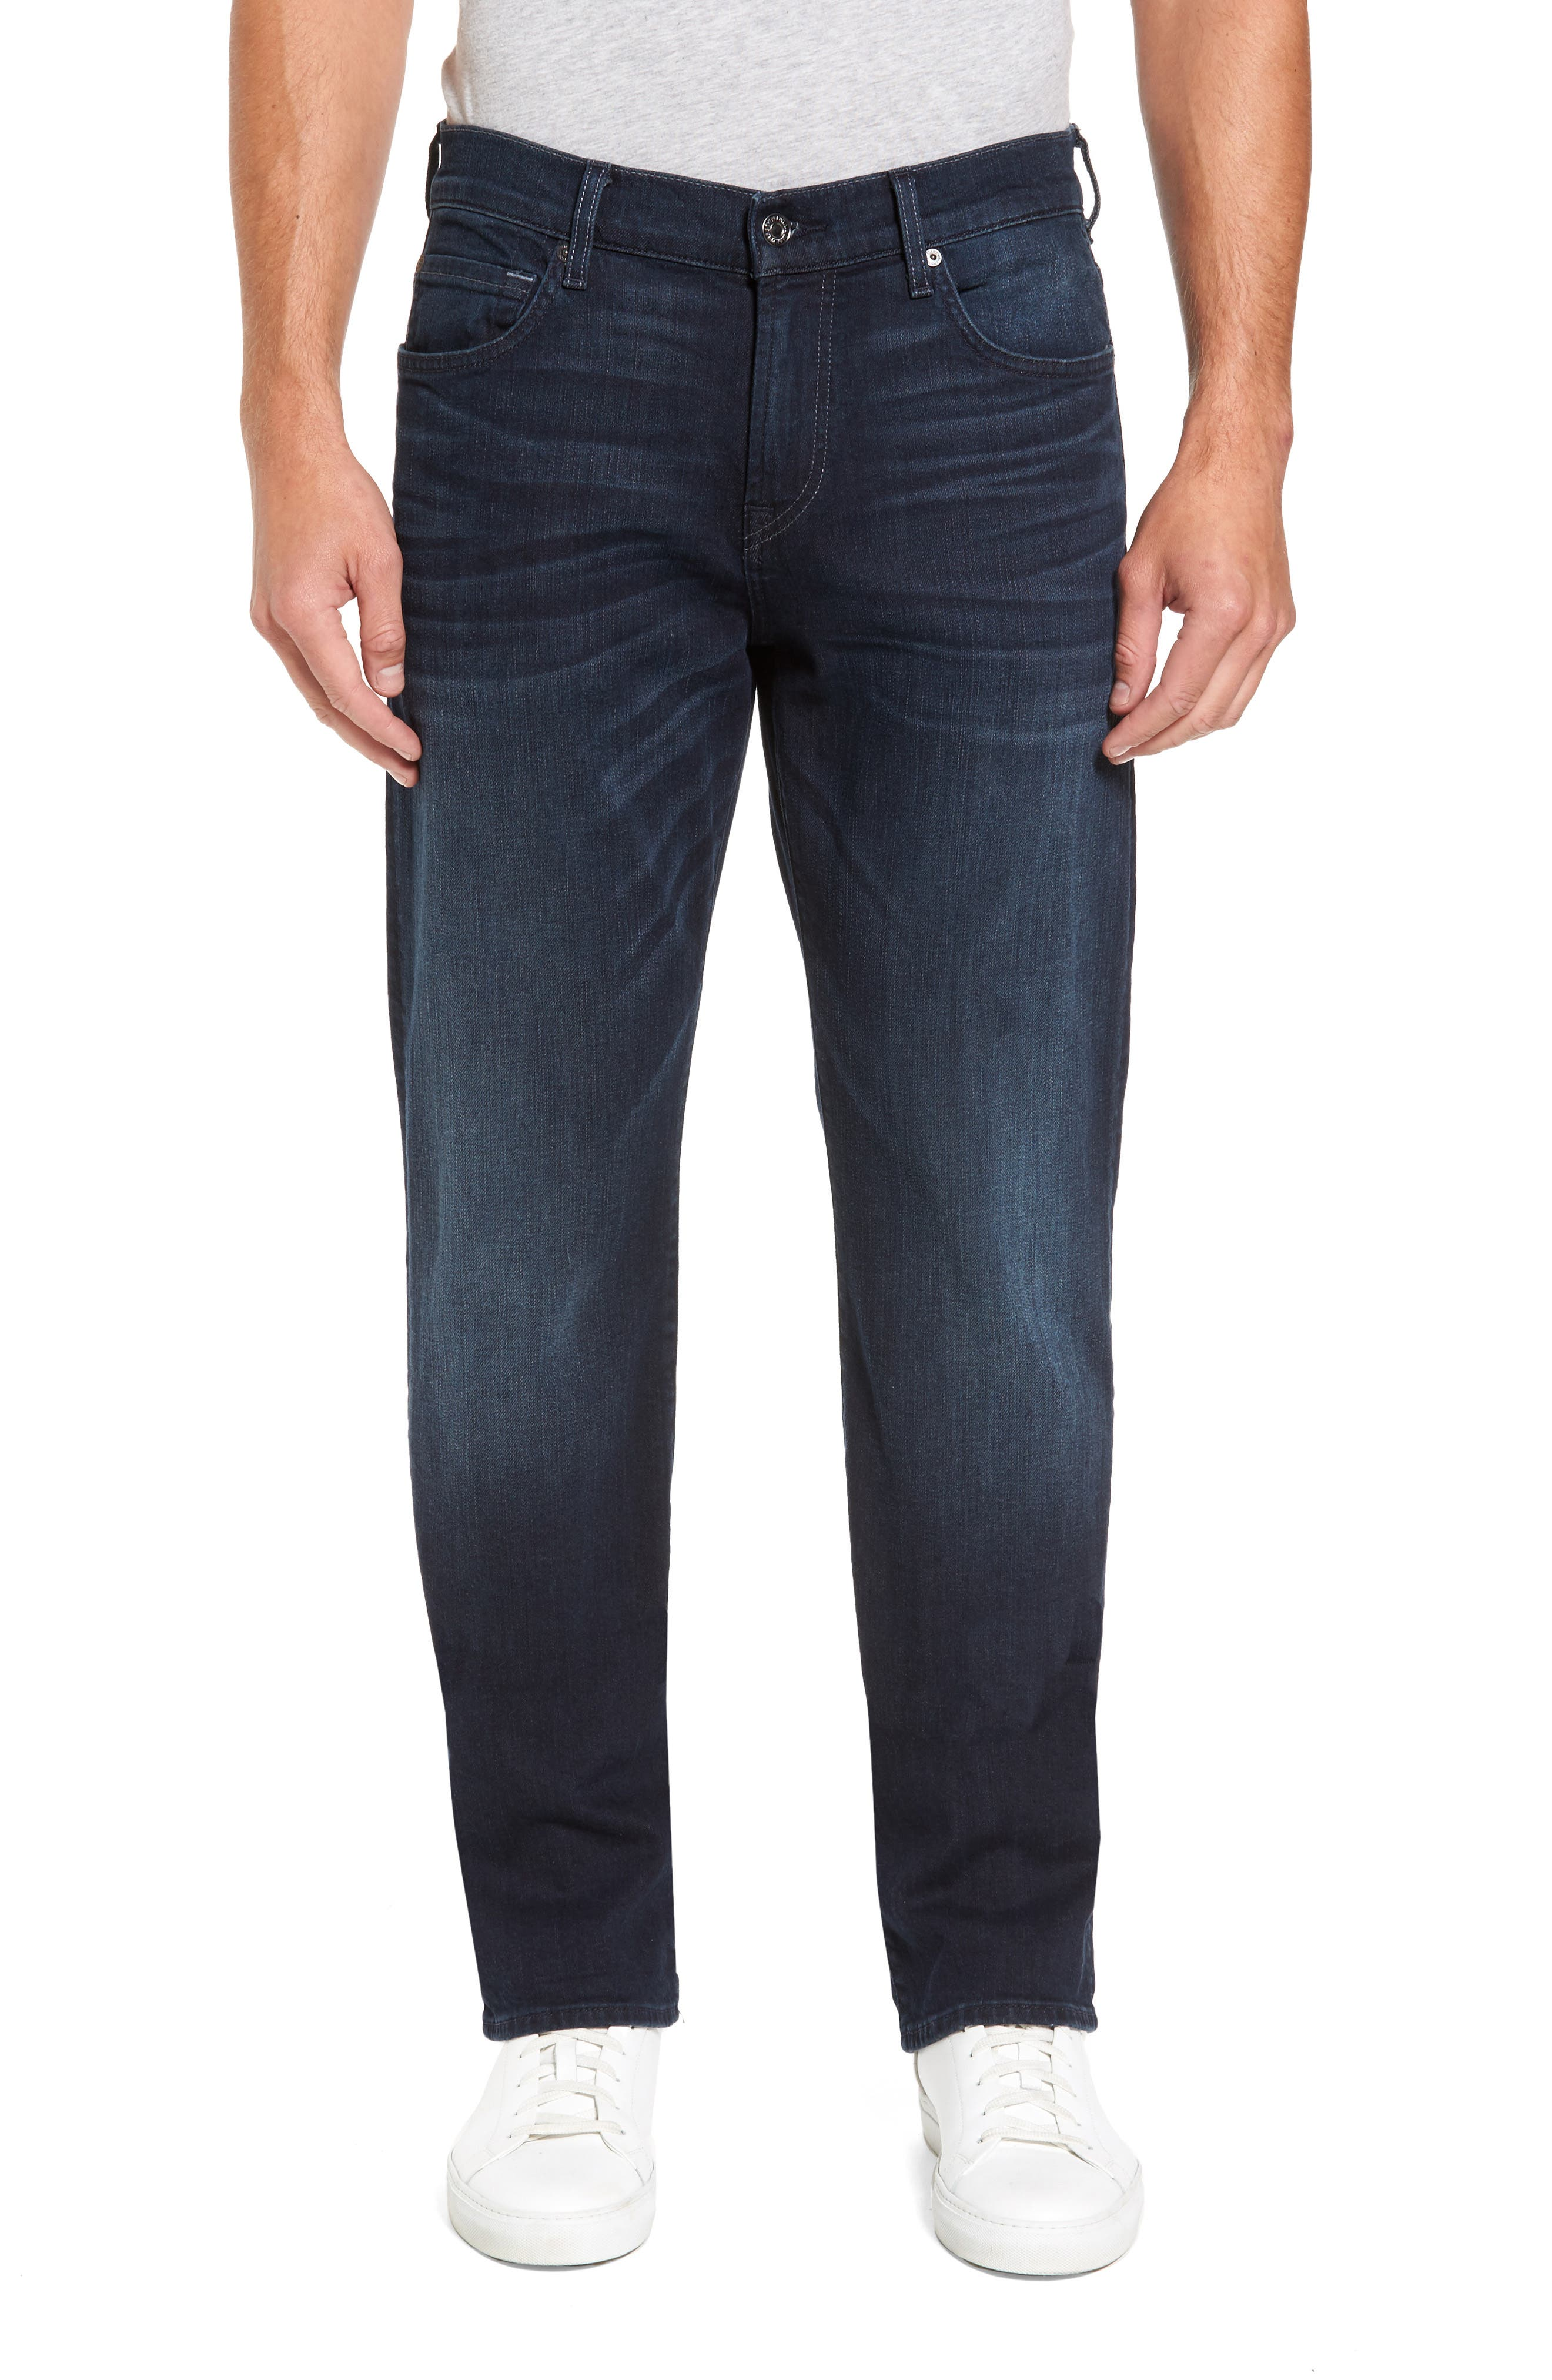 Luxe Performance - Carsen Straight Leg Jeans,                             Main thumbnail 1, color,                             Dark Current